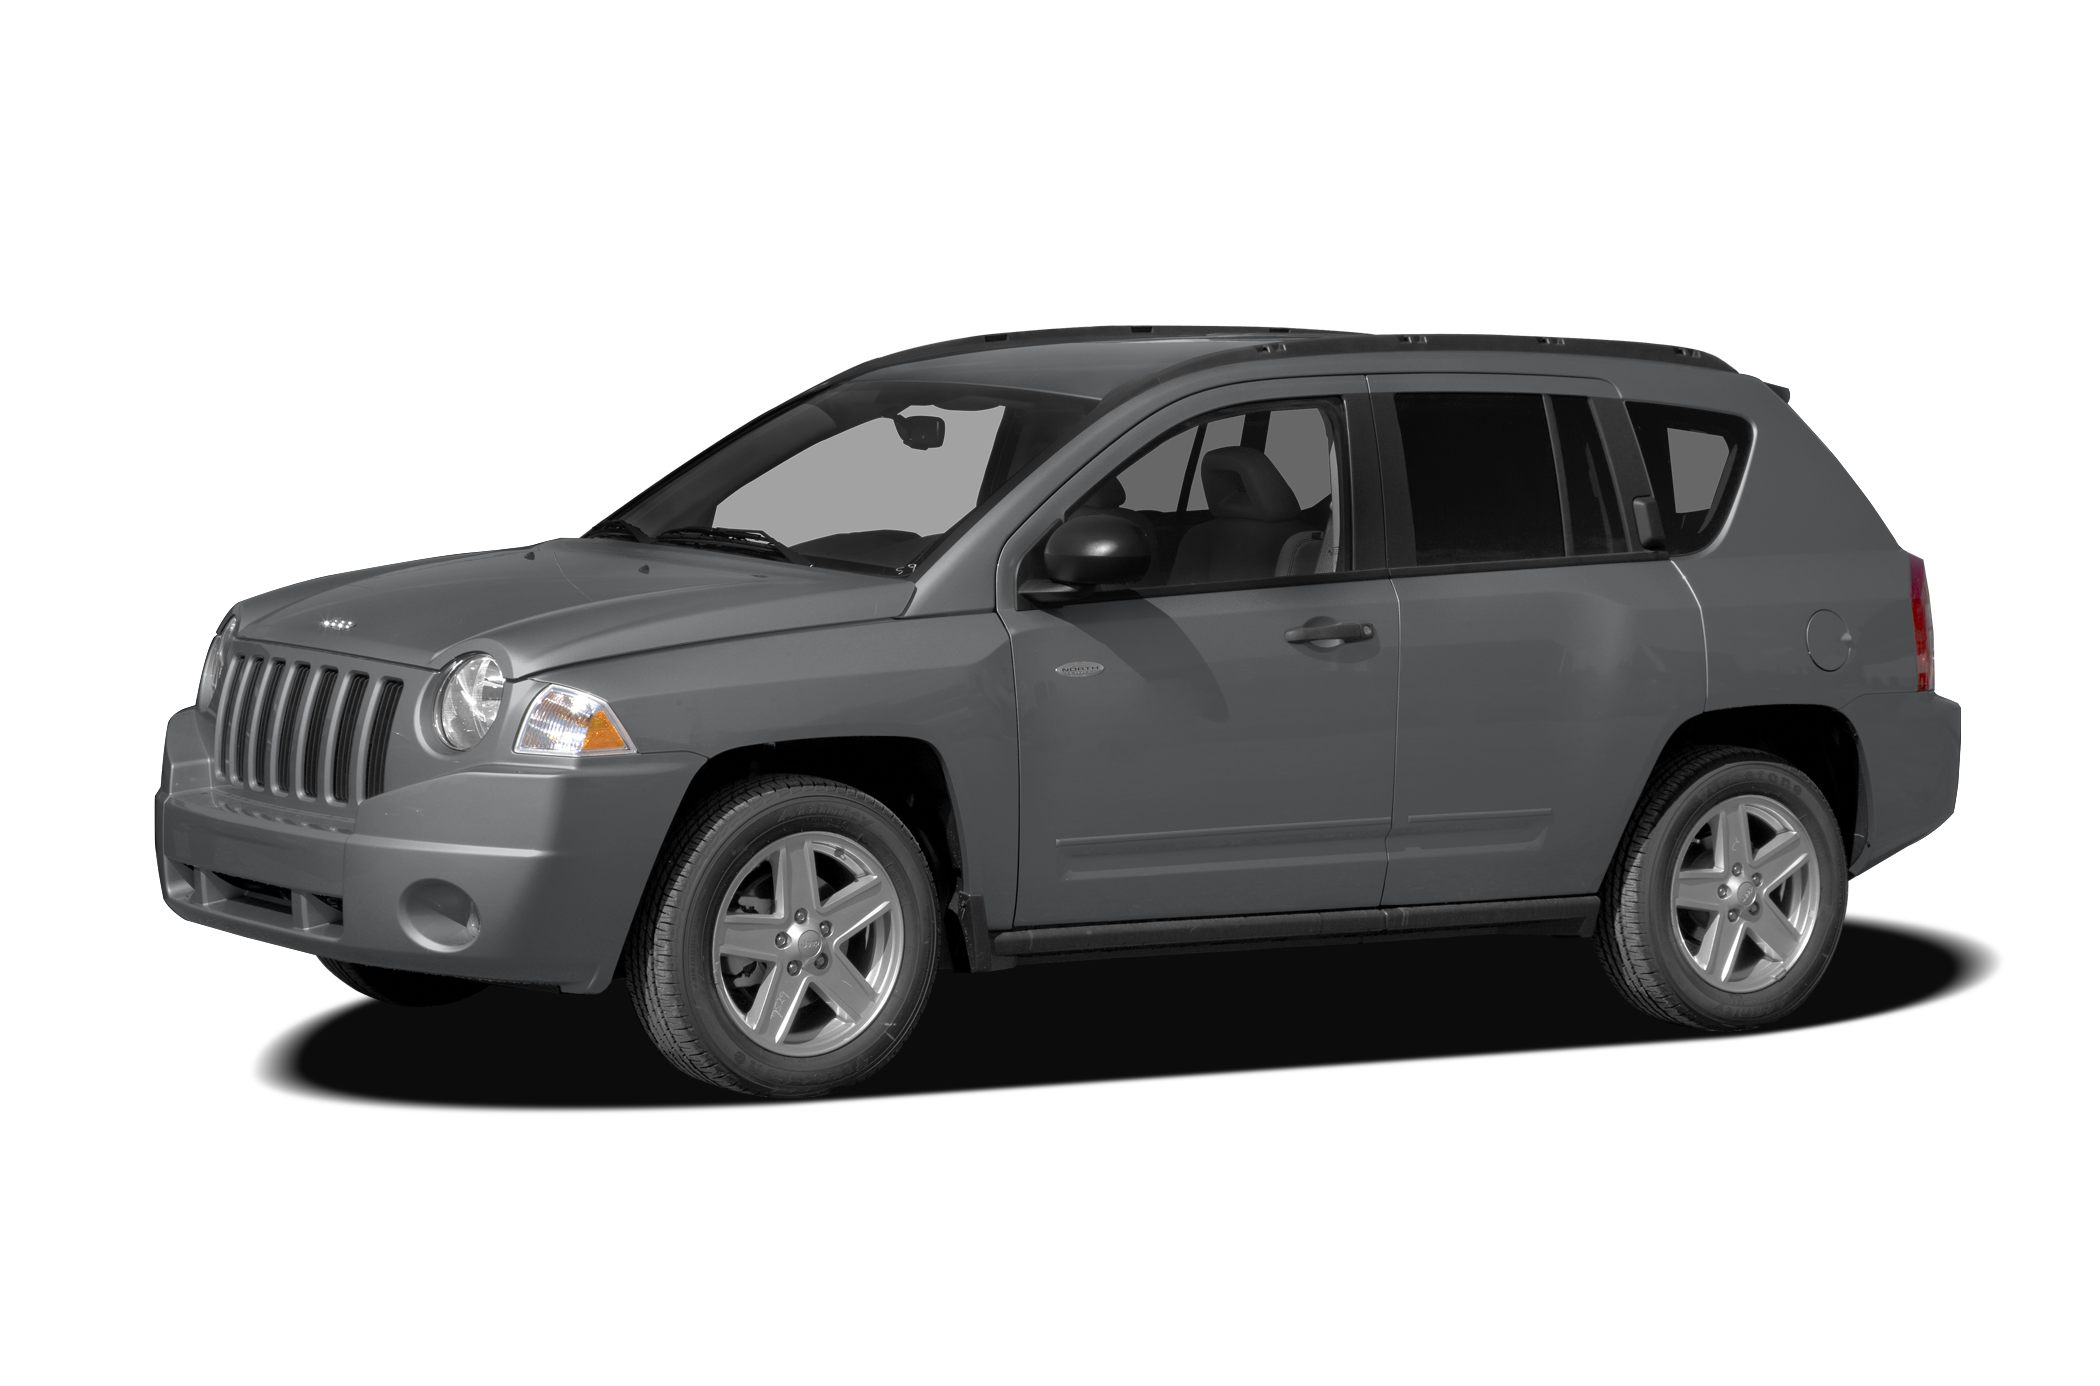 2009 Jeep Compass Sport SUV for sale in Little Rock for $11,900 with 79,000 miles